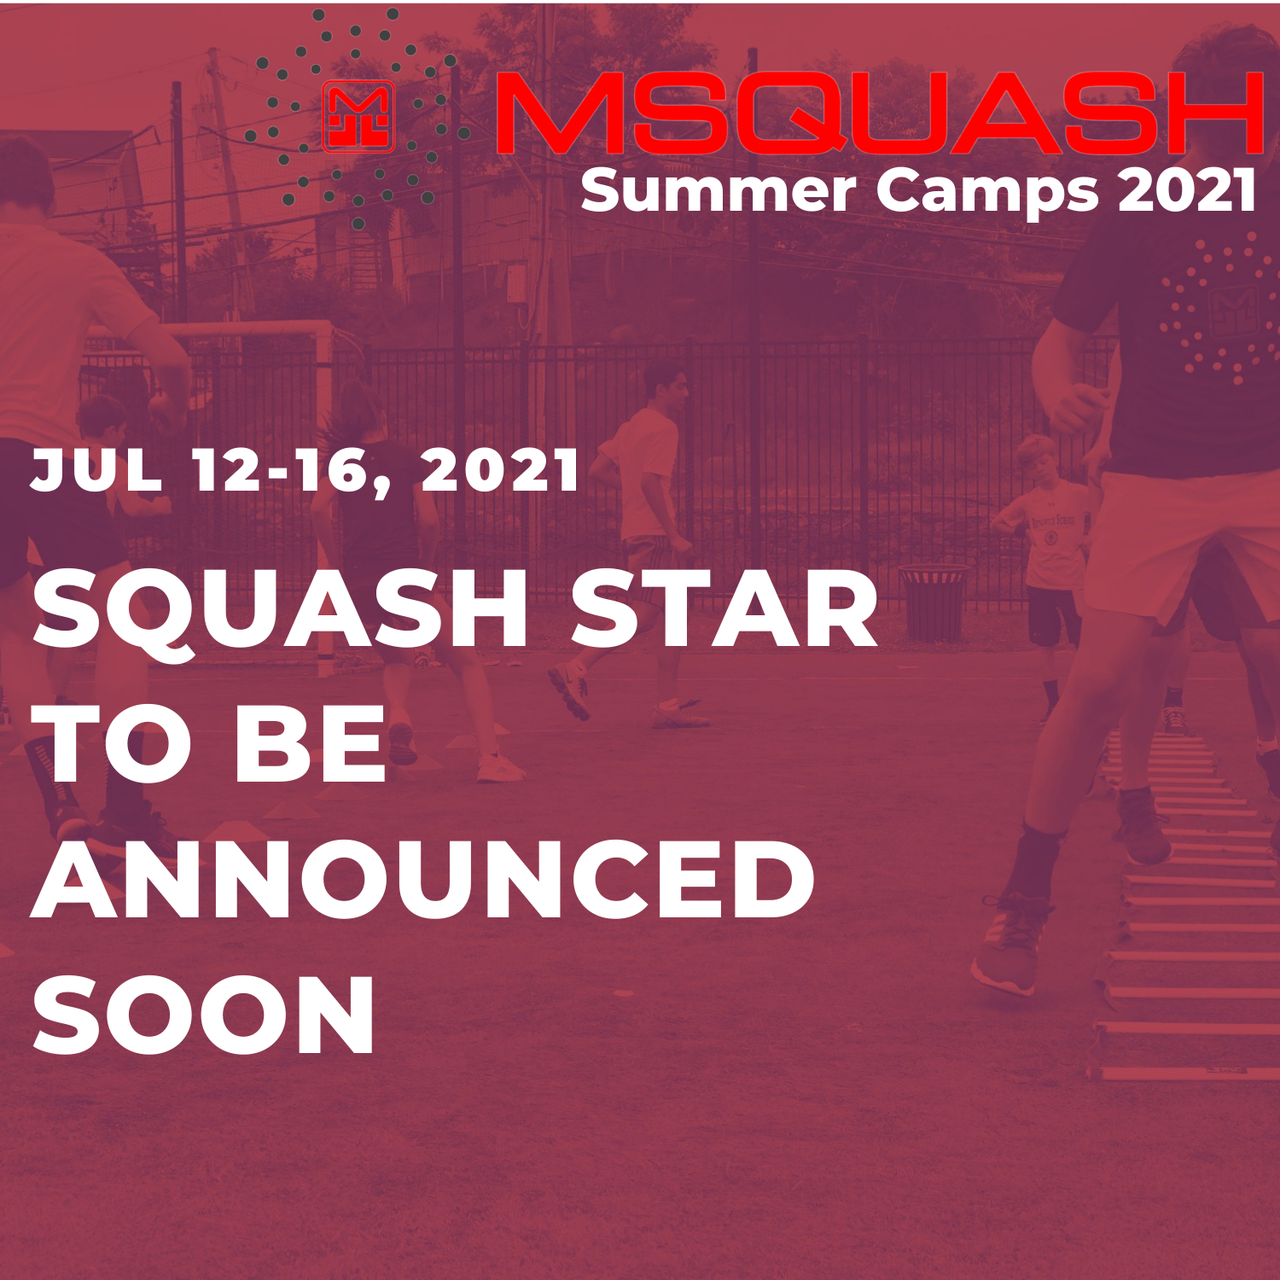 summer camps 2021 logo (21).png